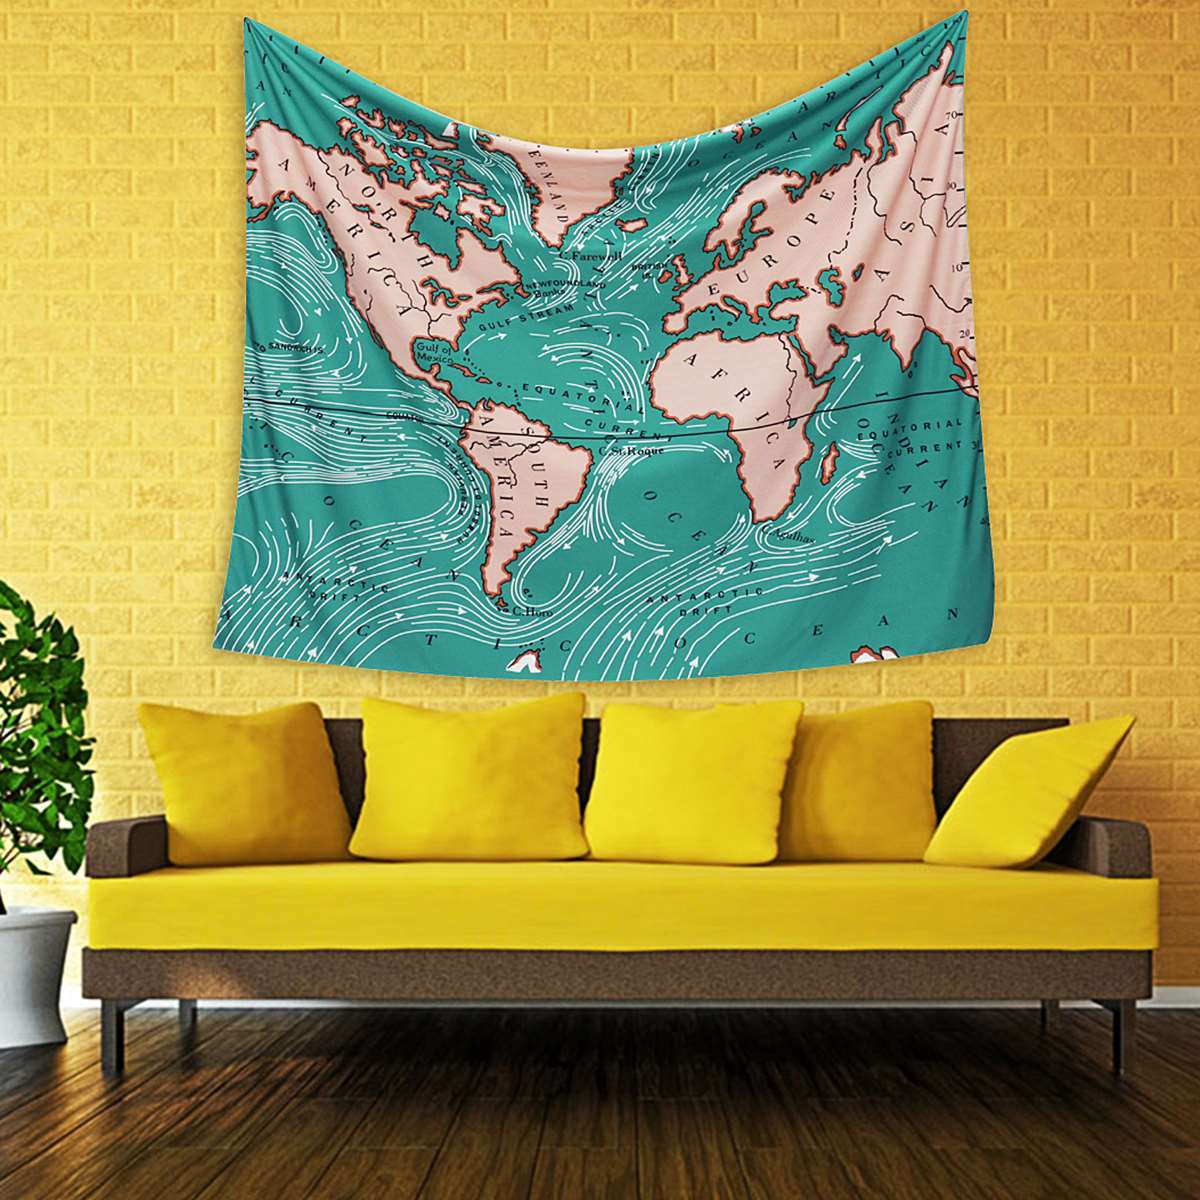 World map indian tapestry 150x130cm wall hanging hippies mandala world map indian tapestry 150x130cm wall hanging hippies mandala bedspread throw blanket picnic mat home dorm wall decorations in tapestry from home gumiabroncs Choice Image